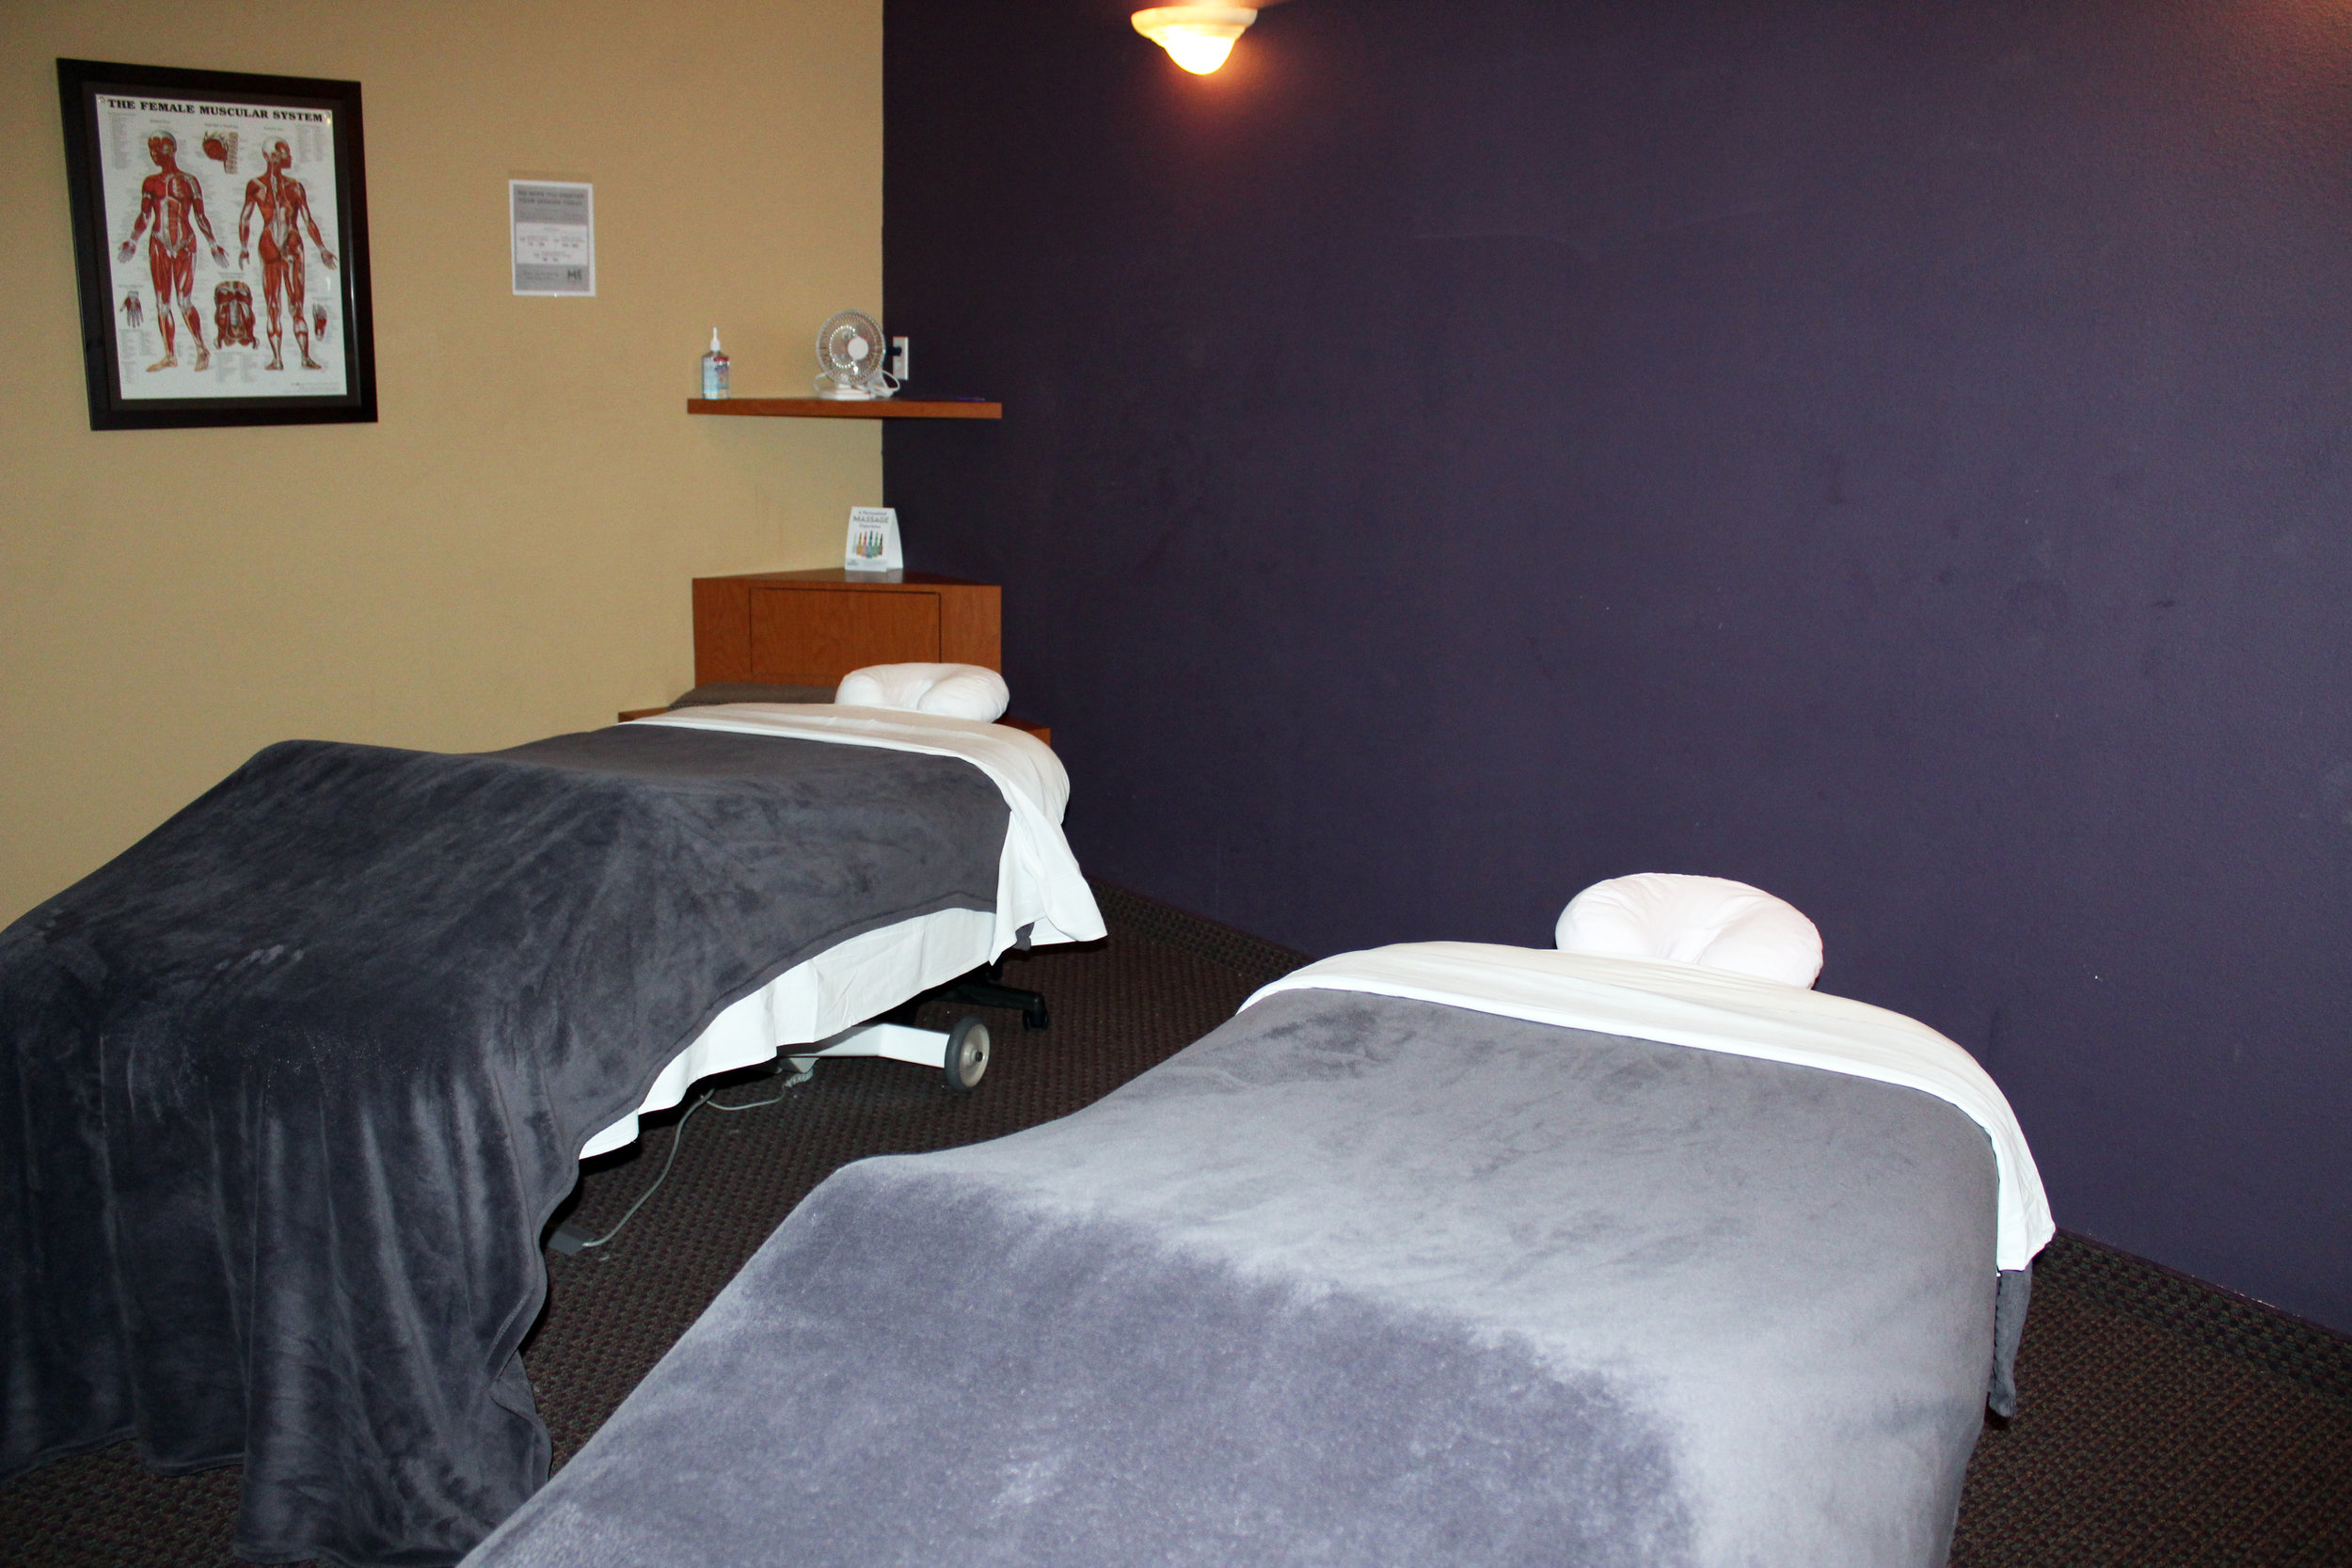 The majority of their clients come to Massage Envy for either relaxation or physical therapy needs.